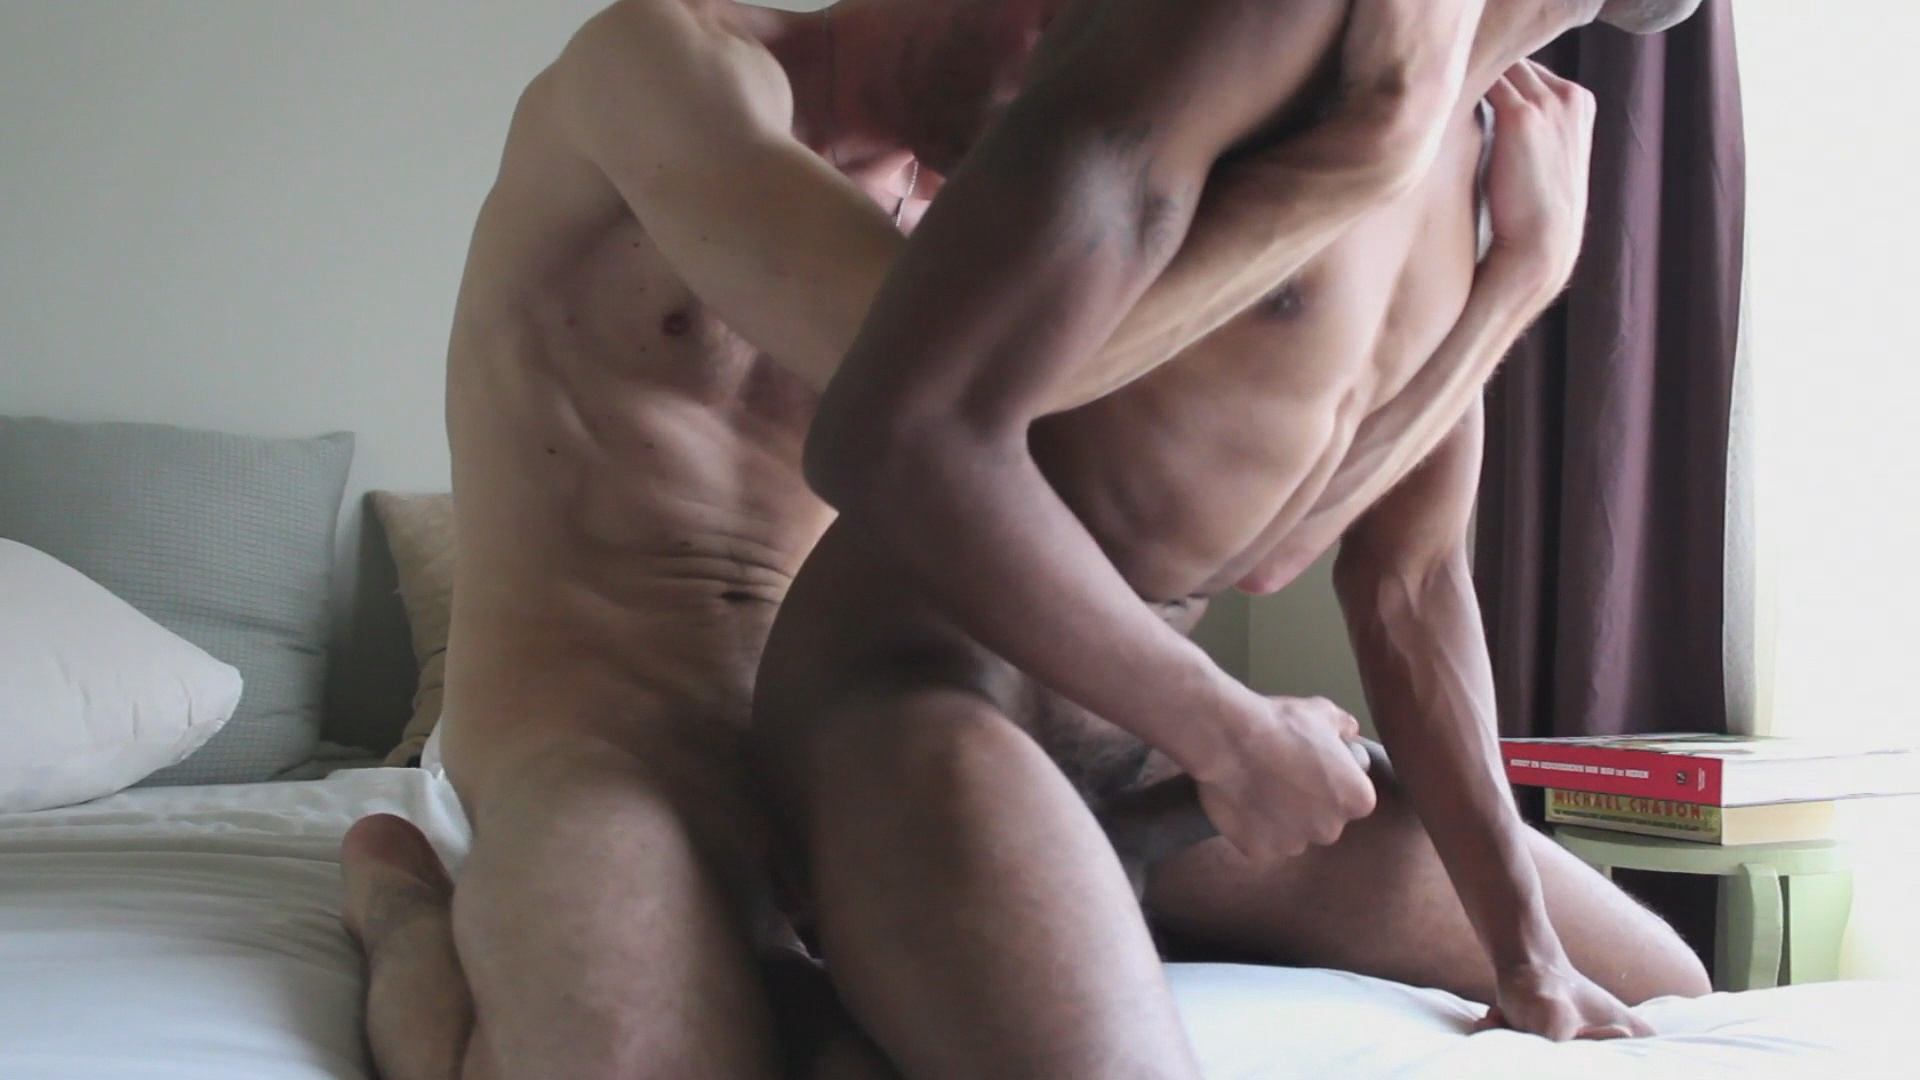 Hot Interracial 3some Xvideo gay